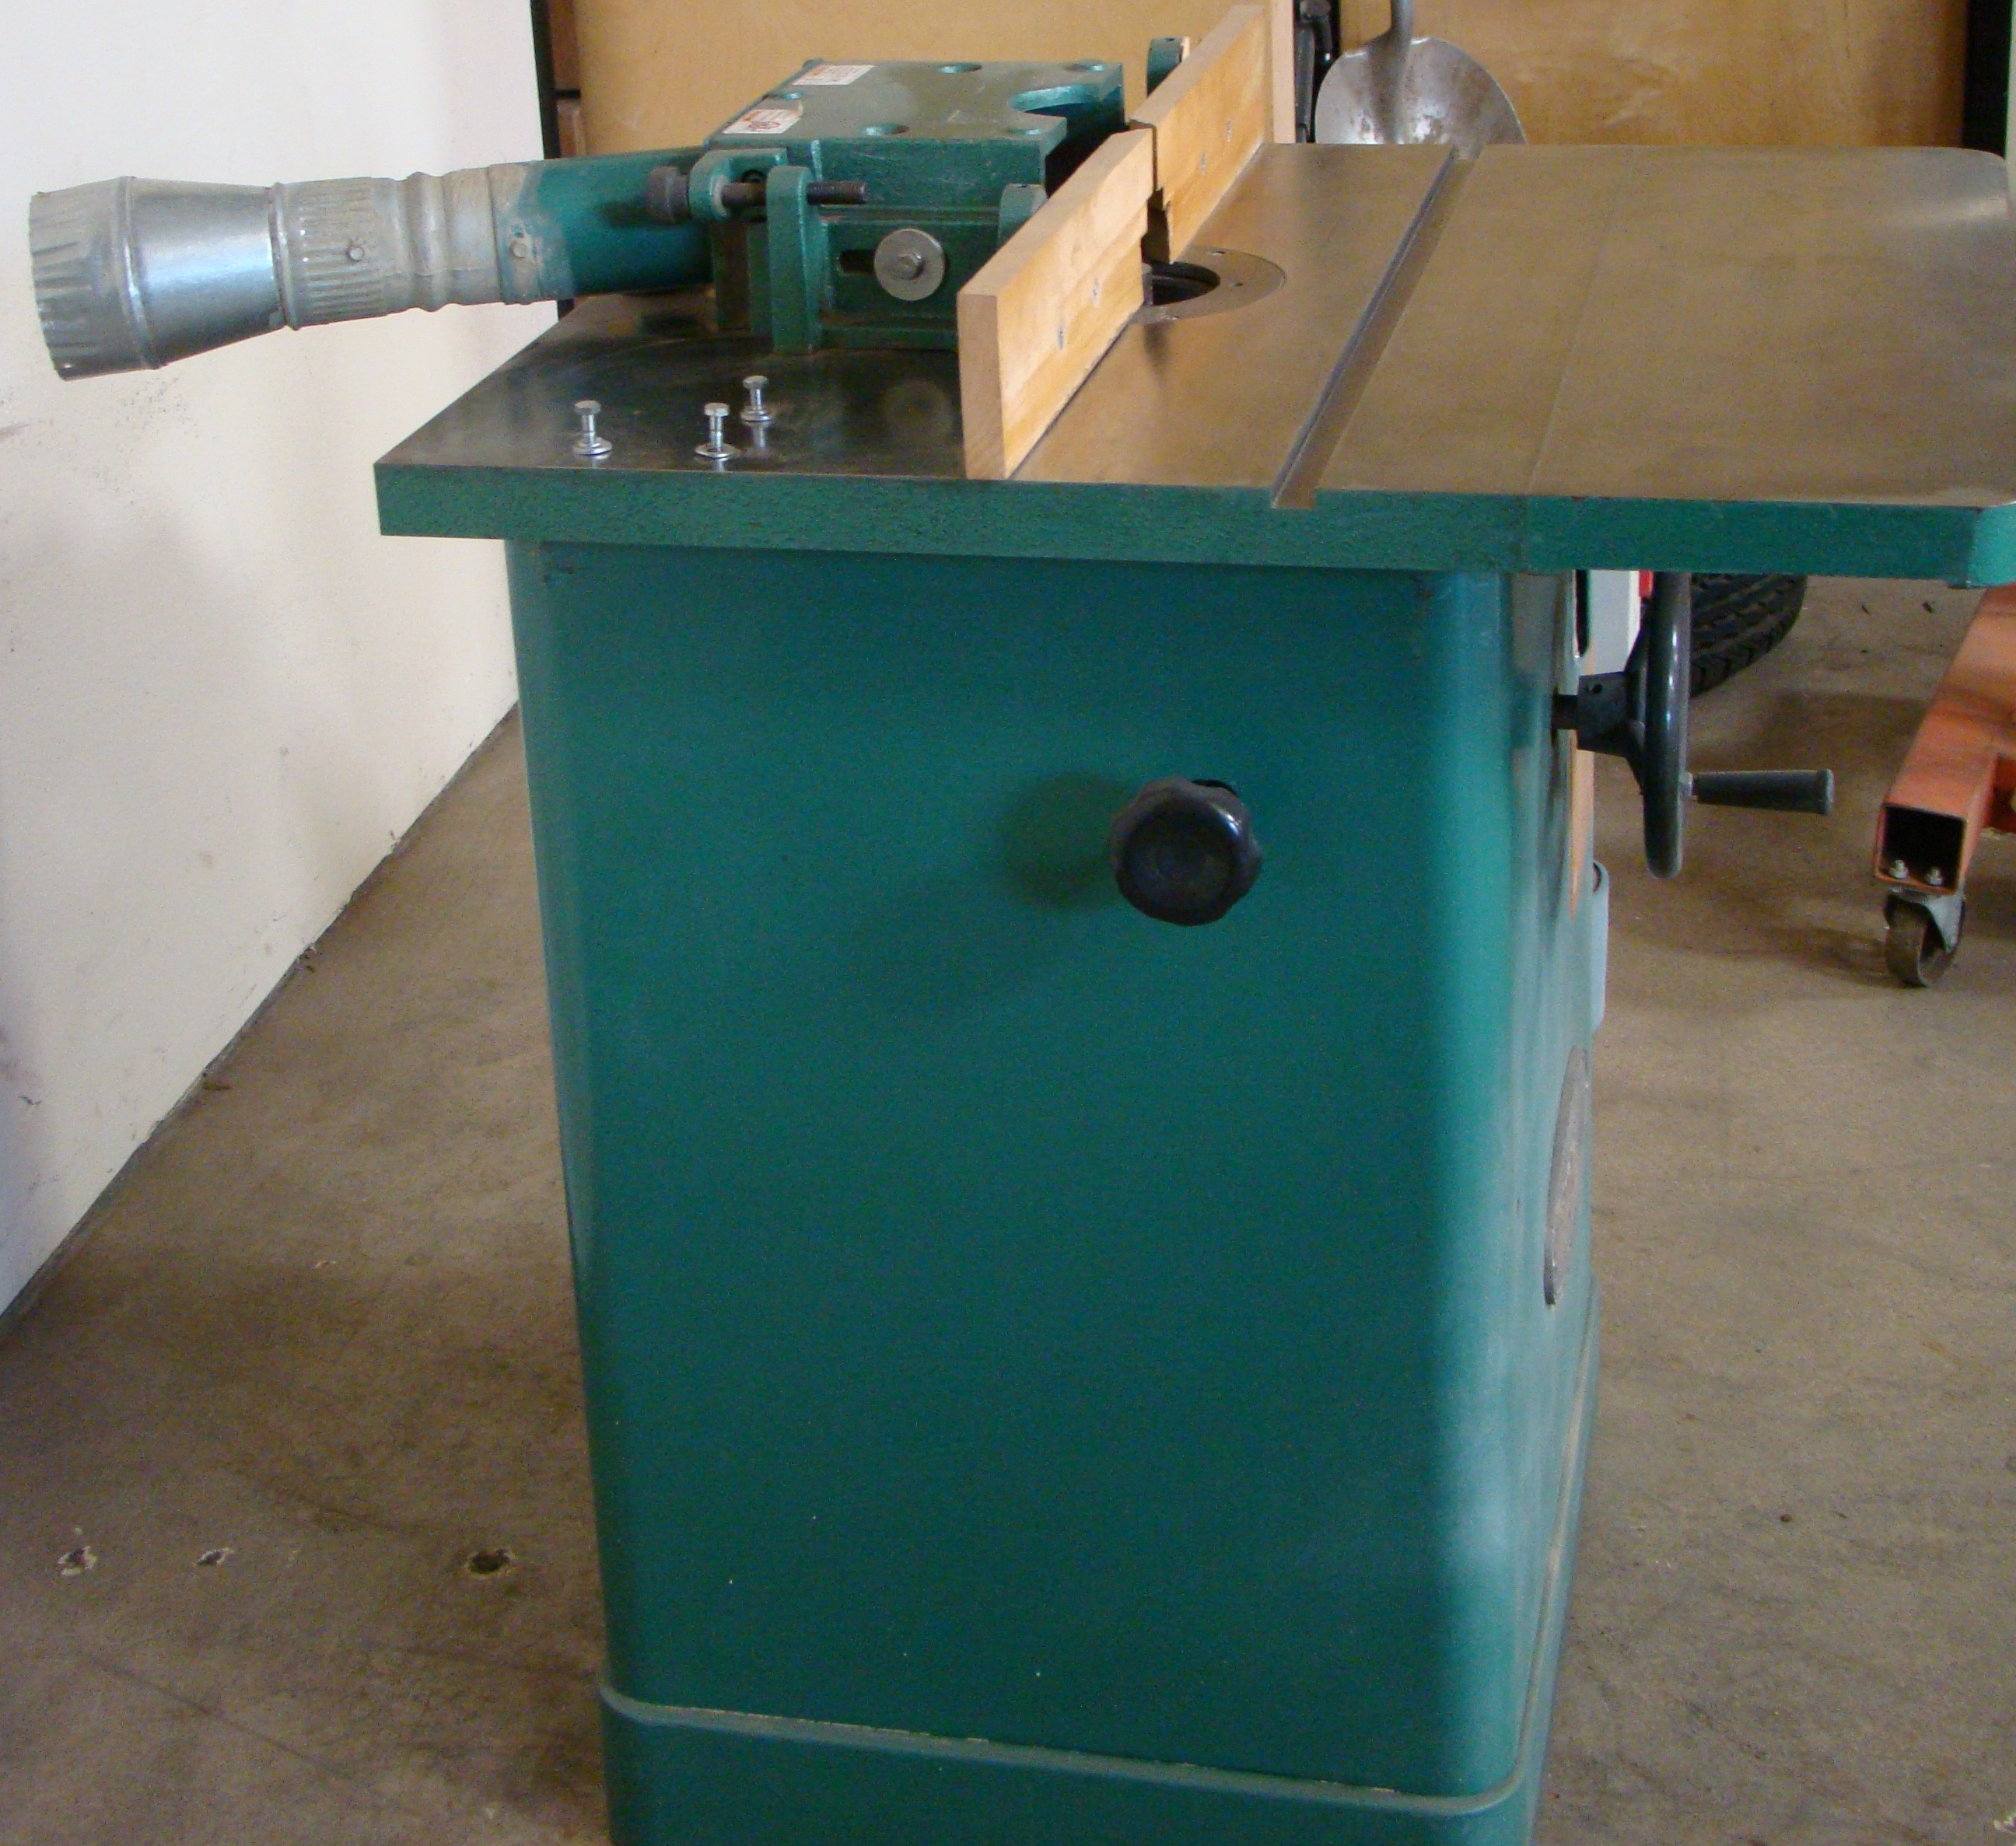 """Grizzly Wood Shaper 3/4"""" Spindle 3HP 230 Volt 1 PH - Image 2 of 4"""